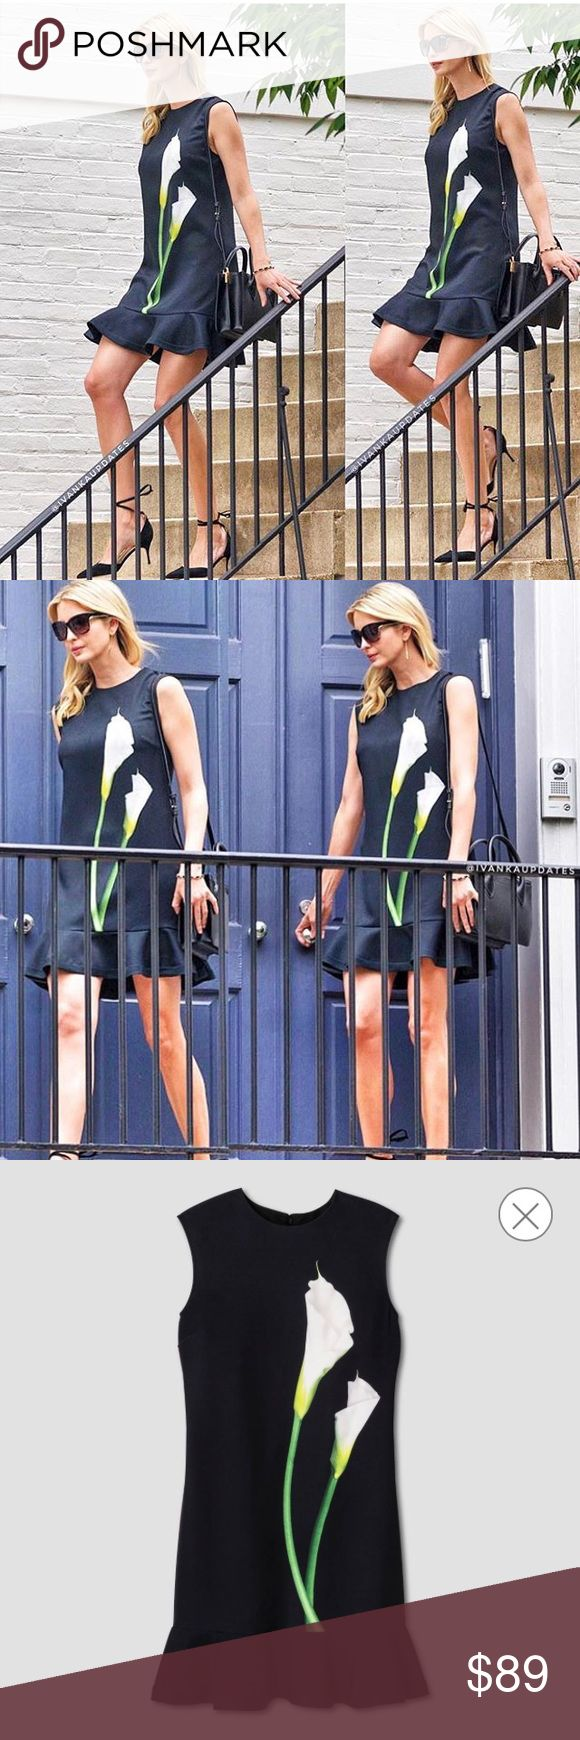 Victoria Beckham Dress Worn by Ivanka Trump On Monday, 6/5/17, the first daughter was spotted leaving her home wearing this dress, which is part of Victoria Beckham's Target line.  RARE & SOLD OUT at stores.  NWT - NEVER WORN. A chic option for work or the weekend, this Women's Black Calla Lily Satin Ruffle Hem Dress by Victoria Beckham for Target is the perfect combination of classic and fashion-forward styles.  Material: 94% Polyester, 6% Spandex, Closure Style: Pullover, Back full length…